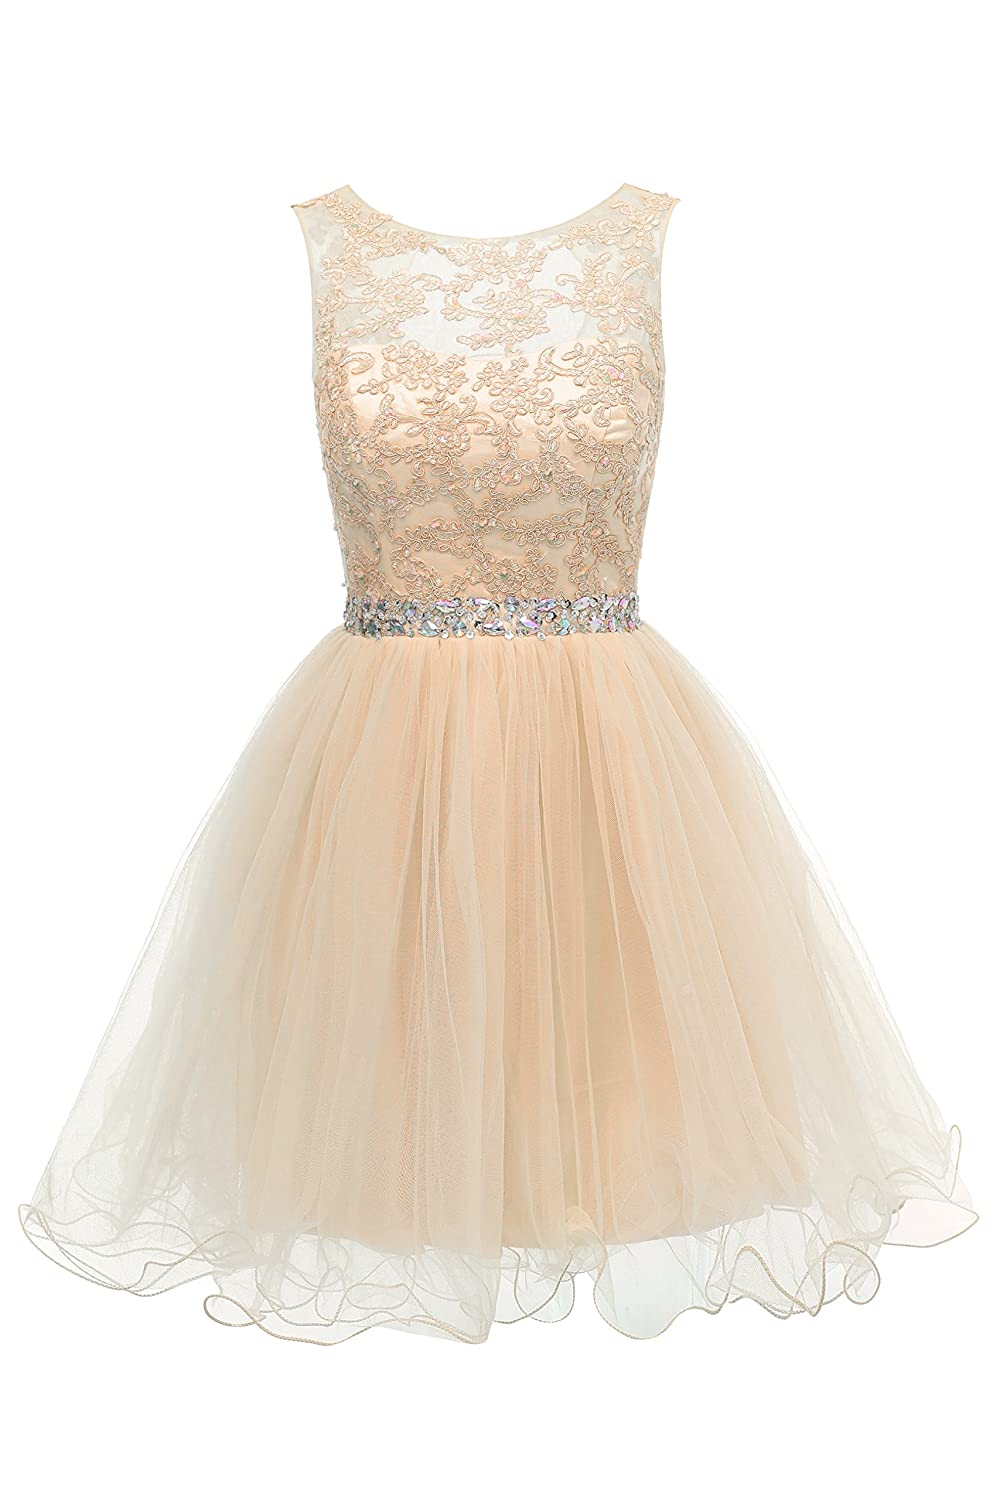 Champagne HEIMO Women's Lace Beaded Homecoming Dresses Short Sequined Appliques Prom Gowns H122